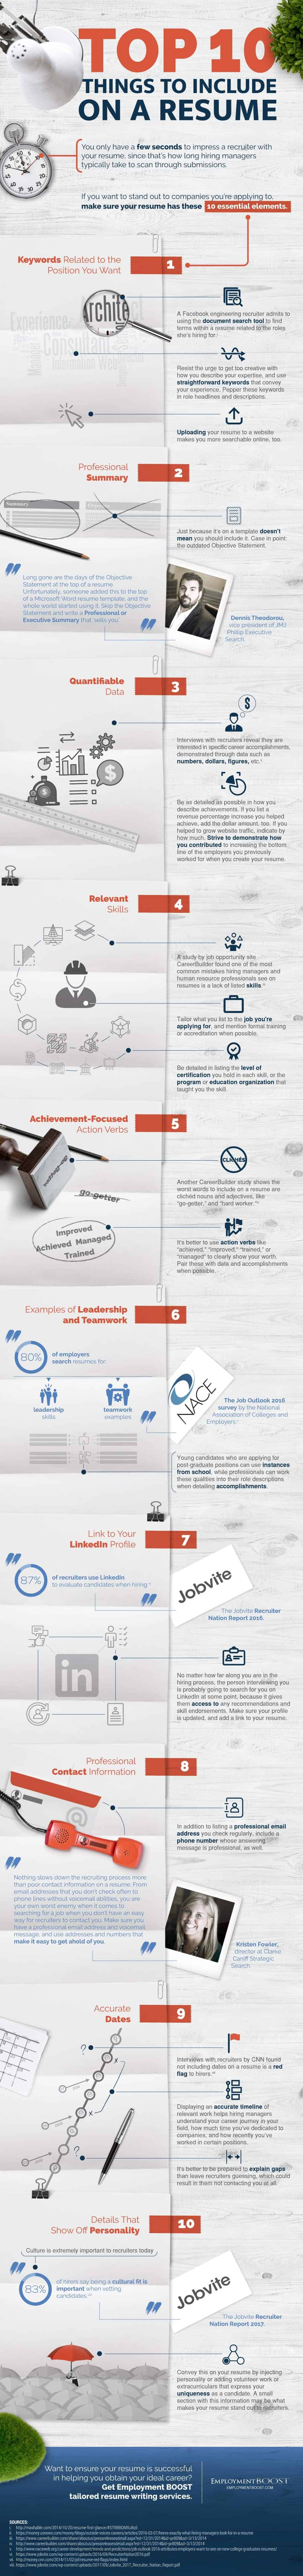 Top 10 Things To Include On A Resume To Stand Out